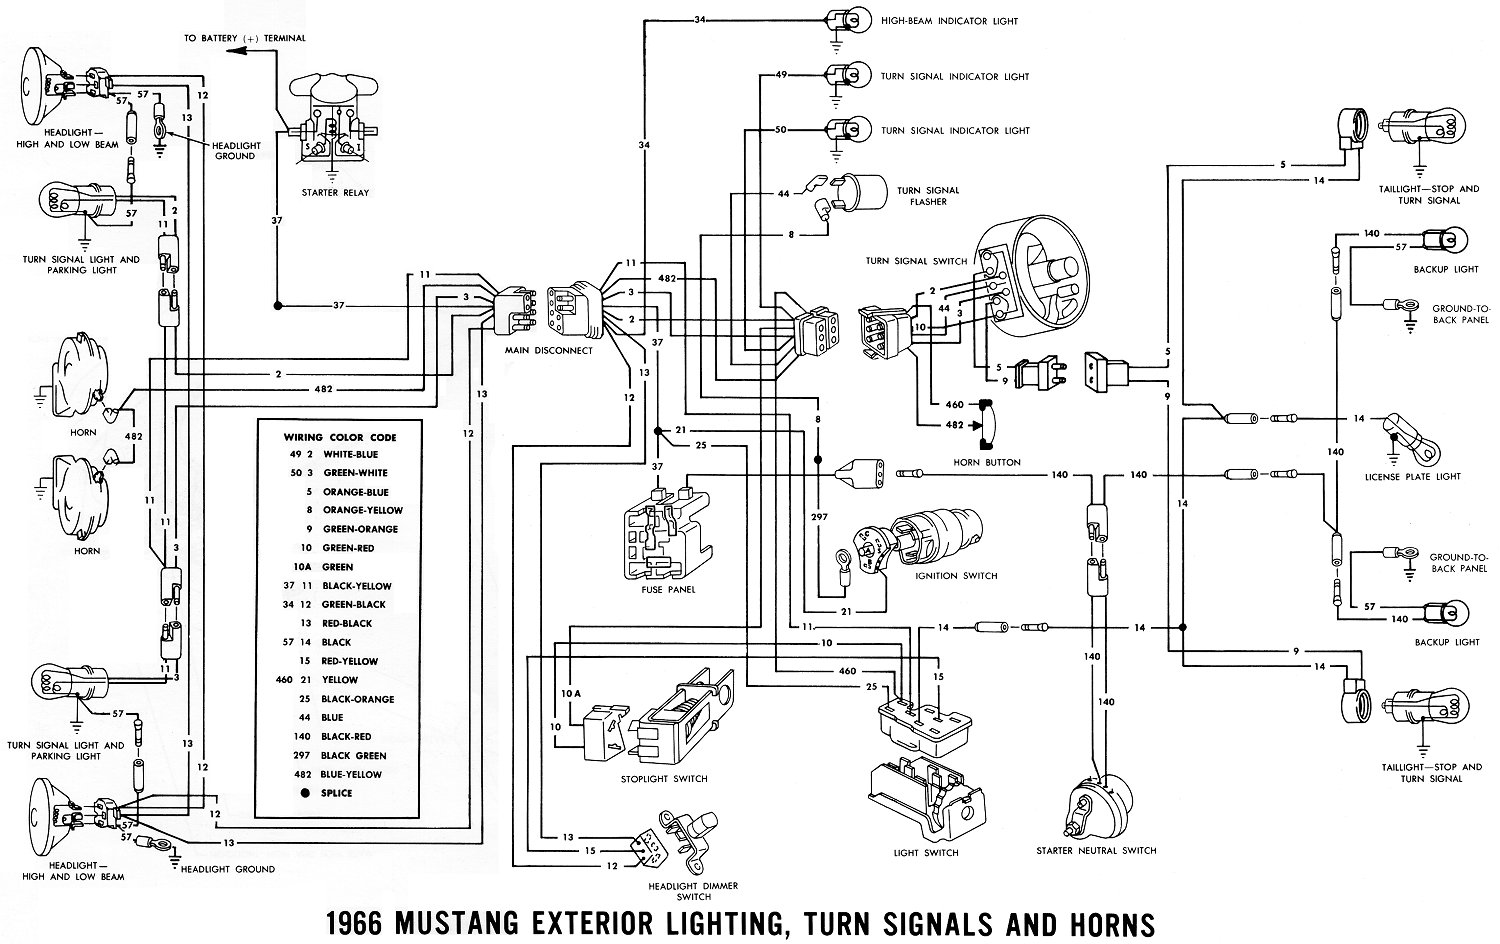 wiring diagram 69 mustang ignition switch powerking co 1968 ford mustang wiring diagram 1966 mustang ignition [ 1500 x 944 Pixel ]